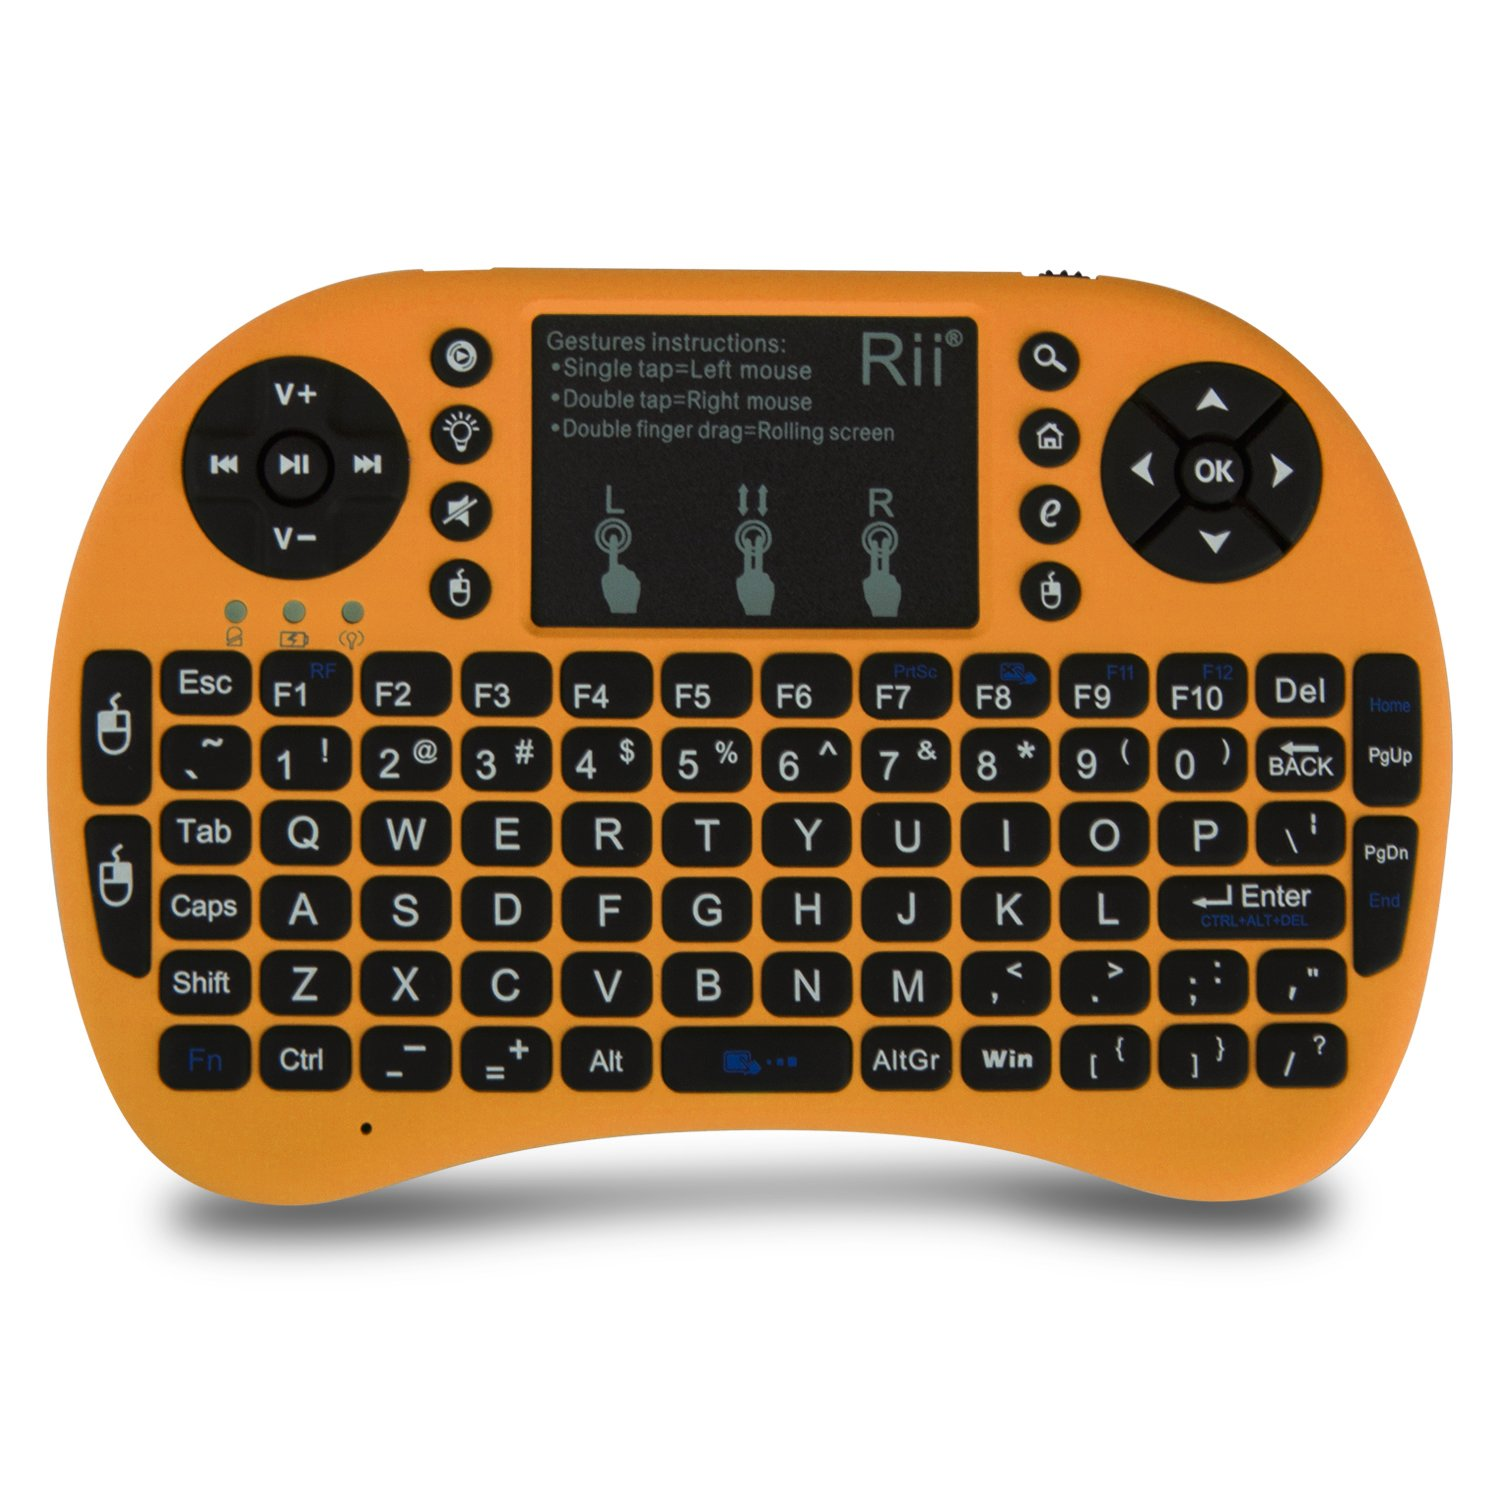 Mini Wireless 2.4G Back Light Touchpad Keyboard with Mouse for PC//Mac//Android Rii i8 Blue